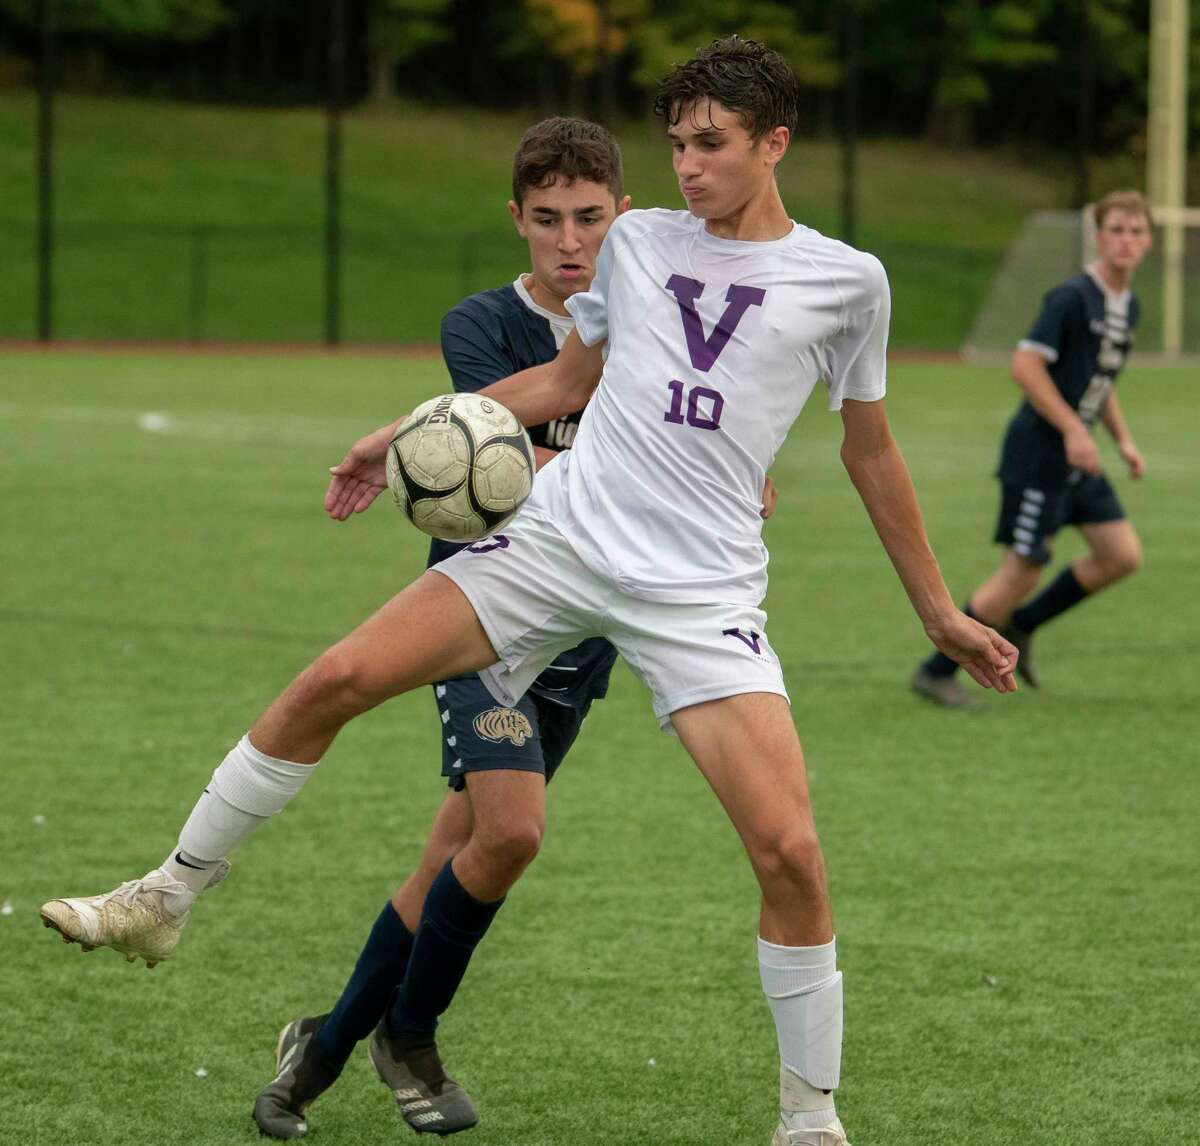 Cohoes' Kyle Smith, left, defends Voorheesville's Ryan McMillen during the Colonial Council tournament boys' soccer game on Wednesday, Oct, 13, 2021 in Troy, N.Y.